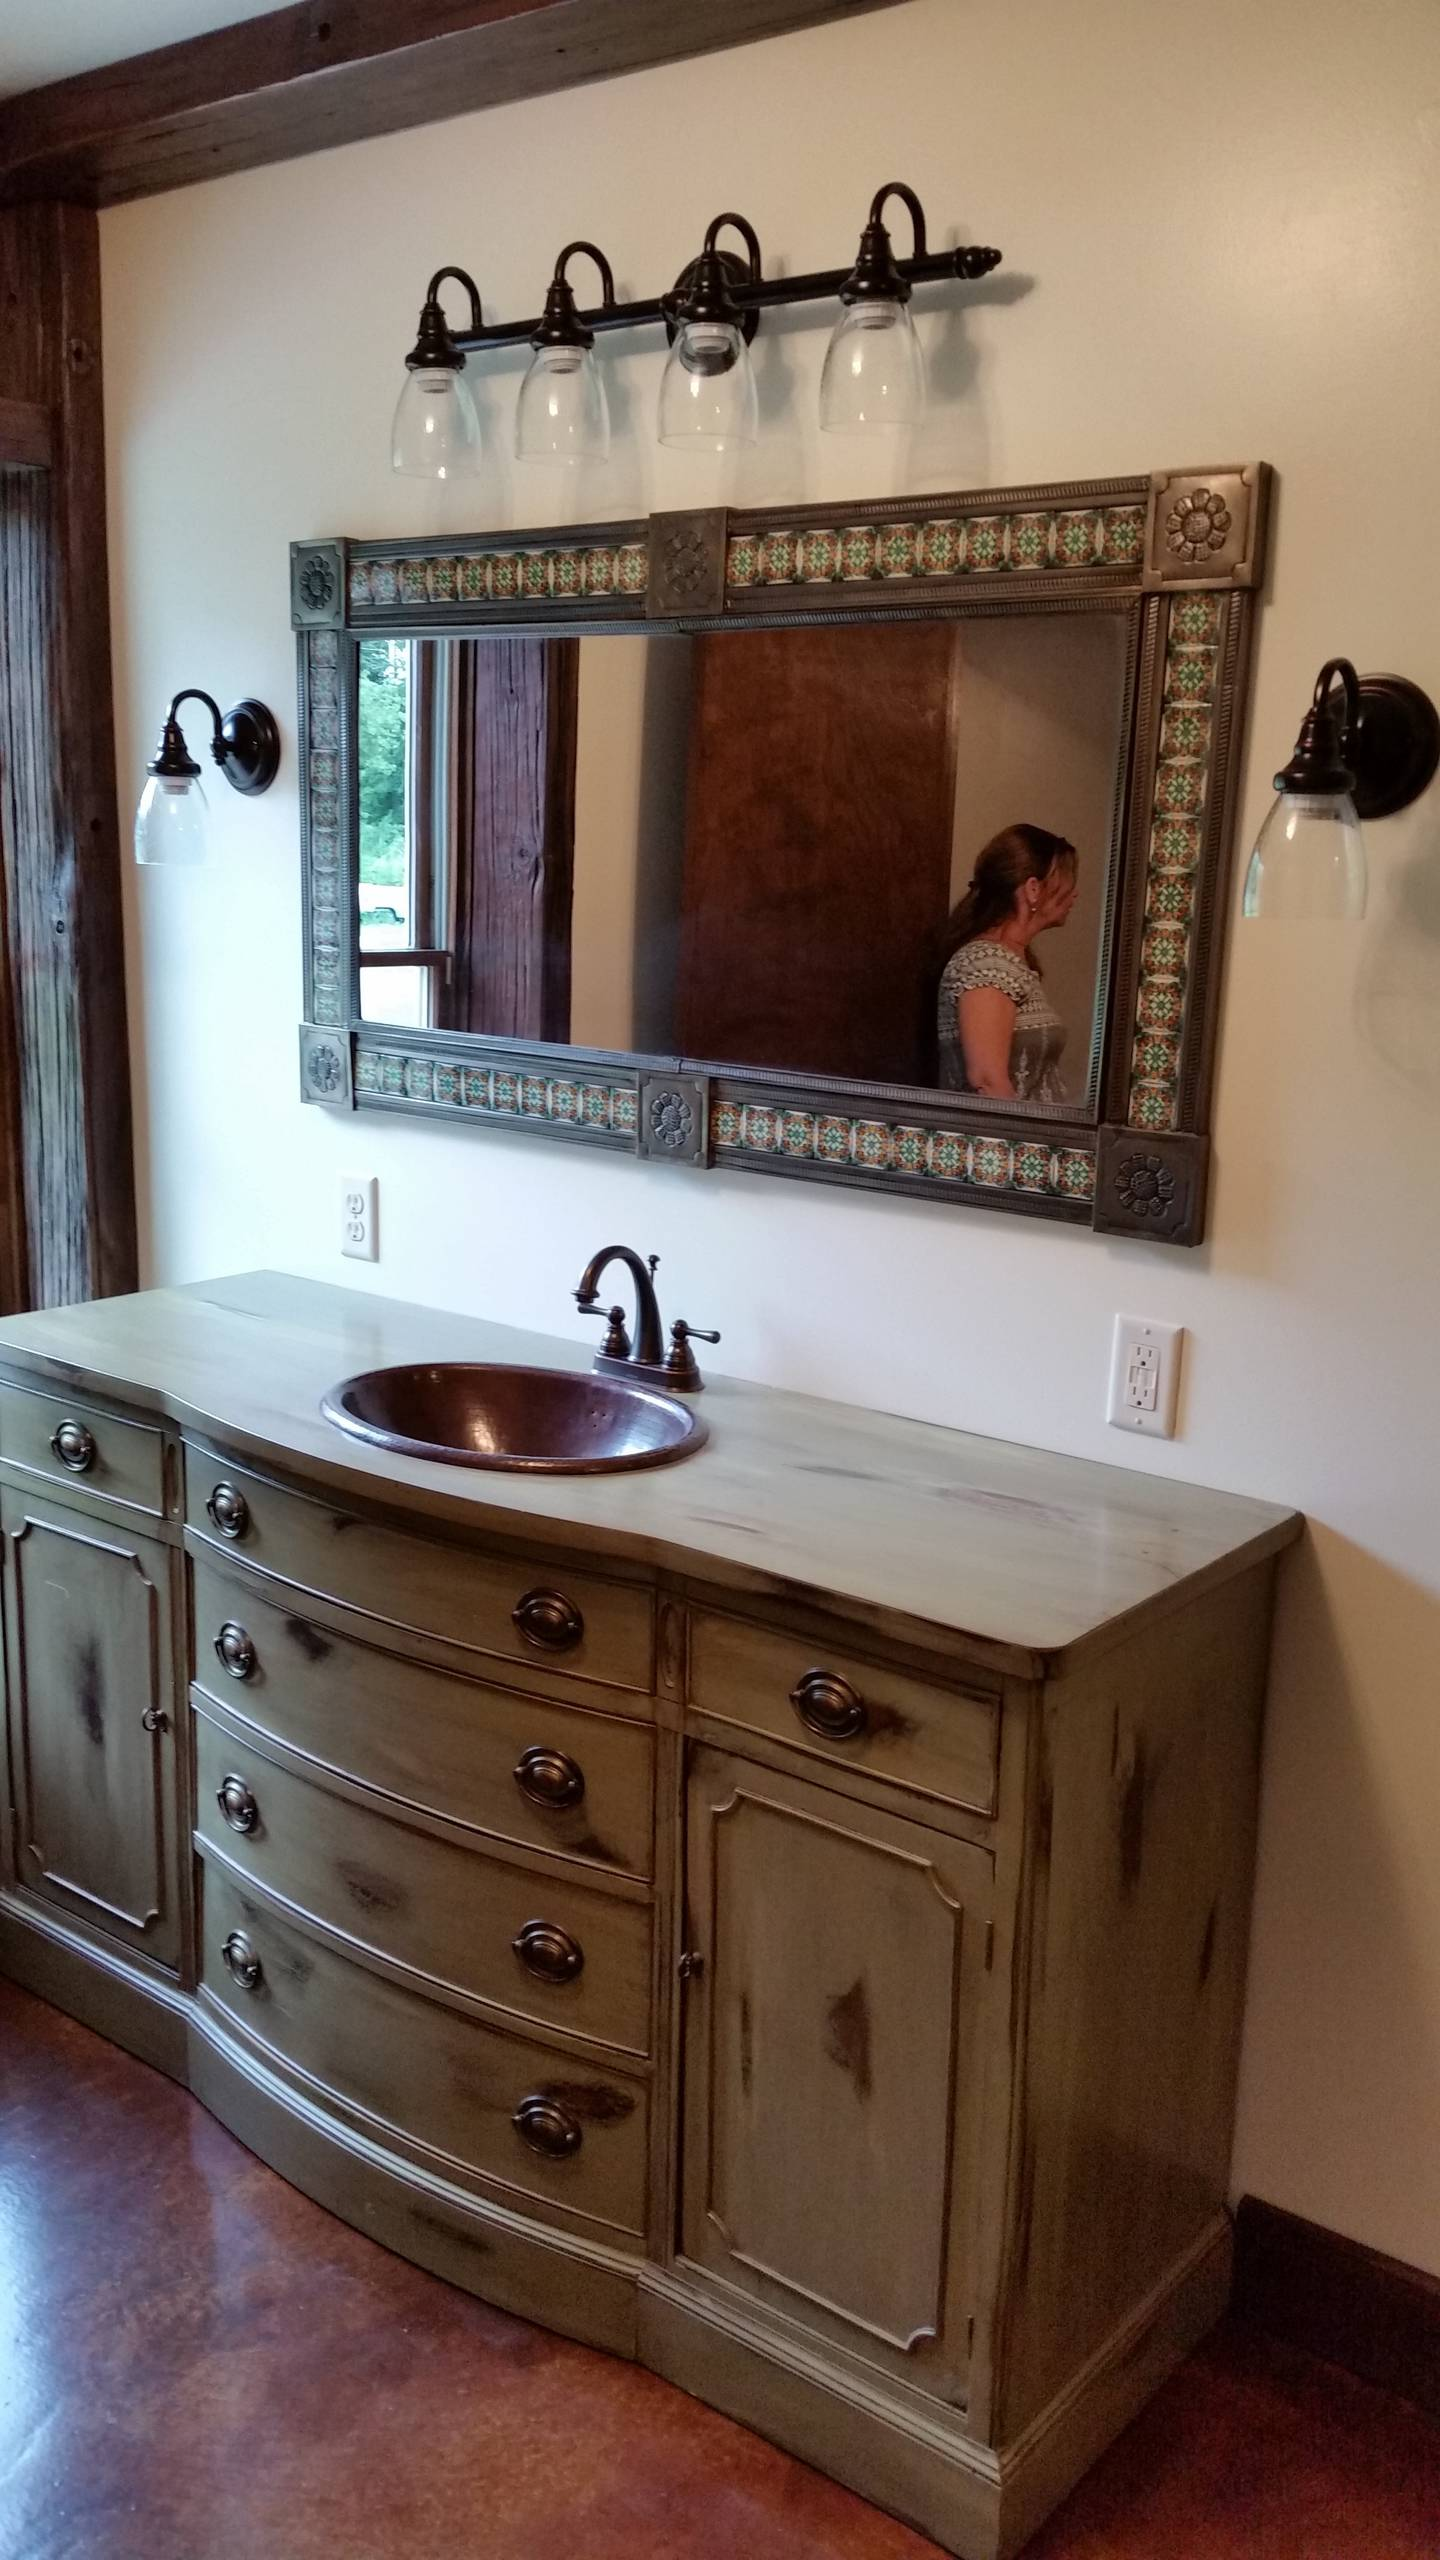 Rustic Bathroom from Start to Finish